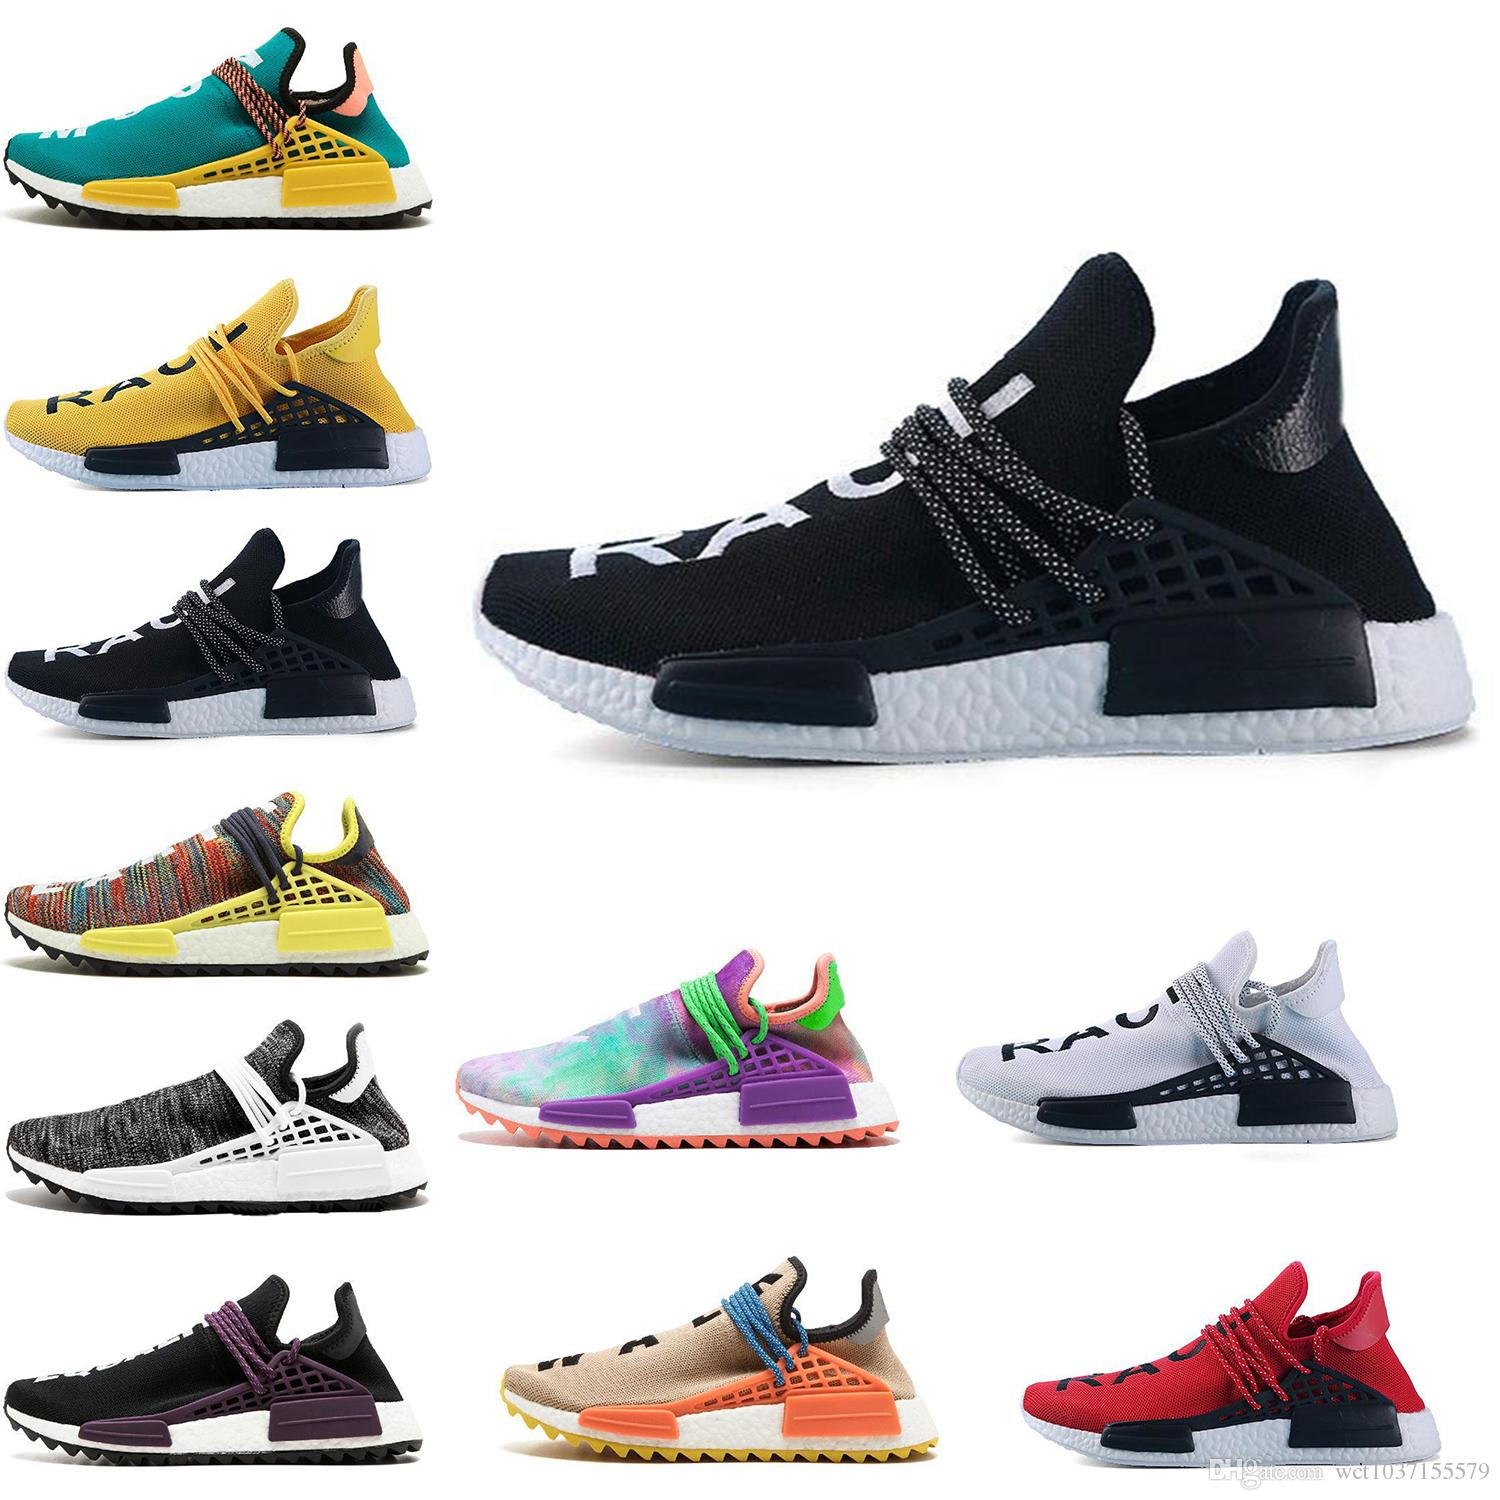 03169ca48 2018 New Pharrell Williams Human Race Nmd Men Women Sports Running Shoes  Black White Grey Nmds Primeknit PK Runner XR1 R1 R2 Sneakers Running  Sneakers ...